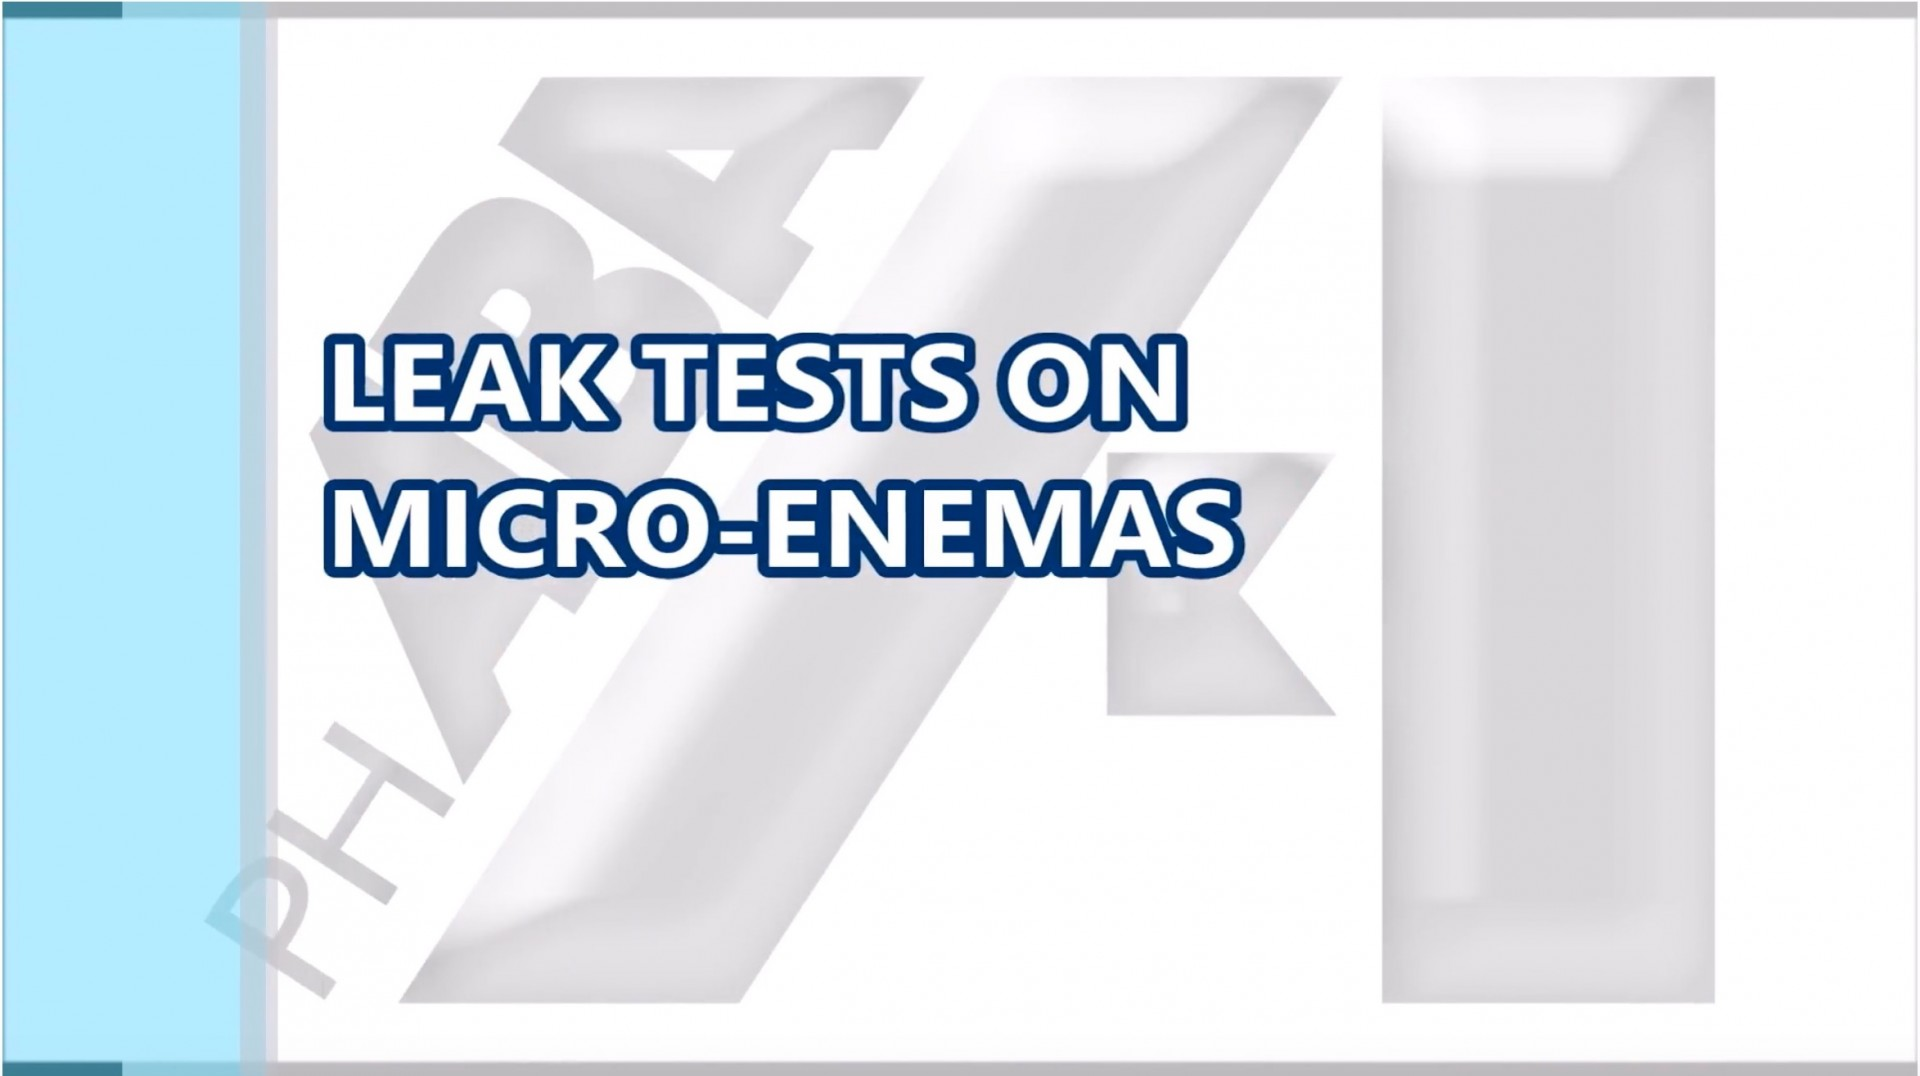 LEAK TESTS ON MICRO-ENEMAS